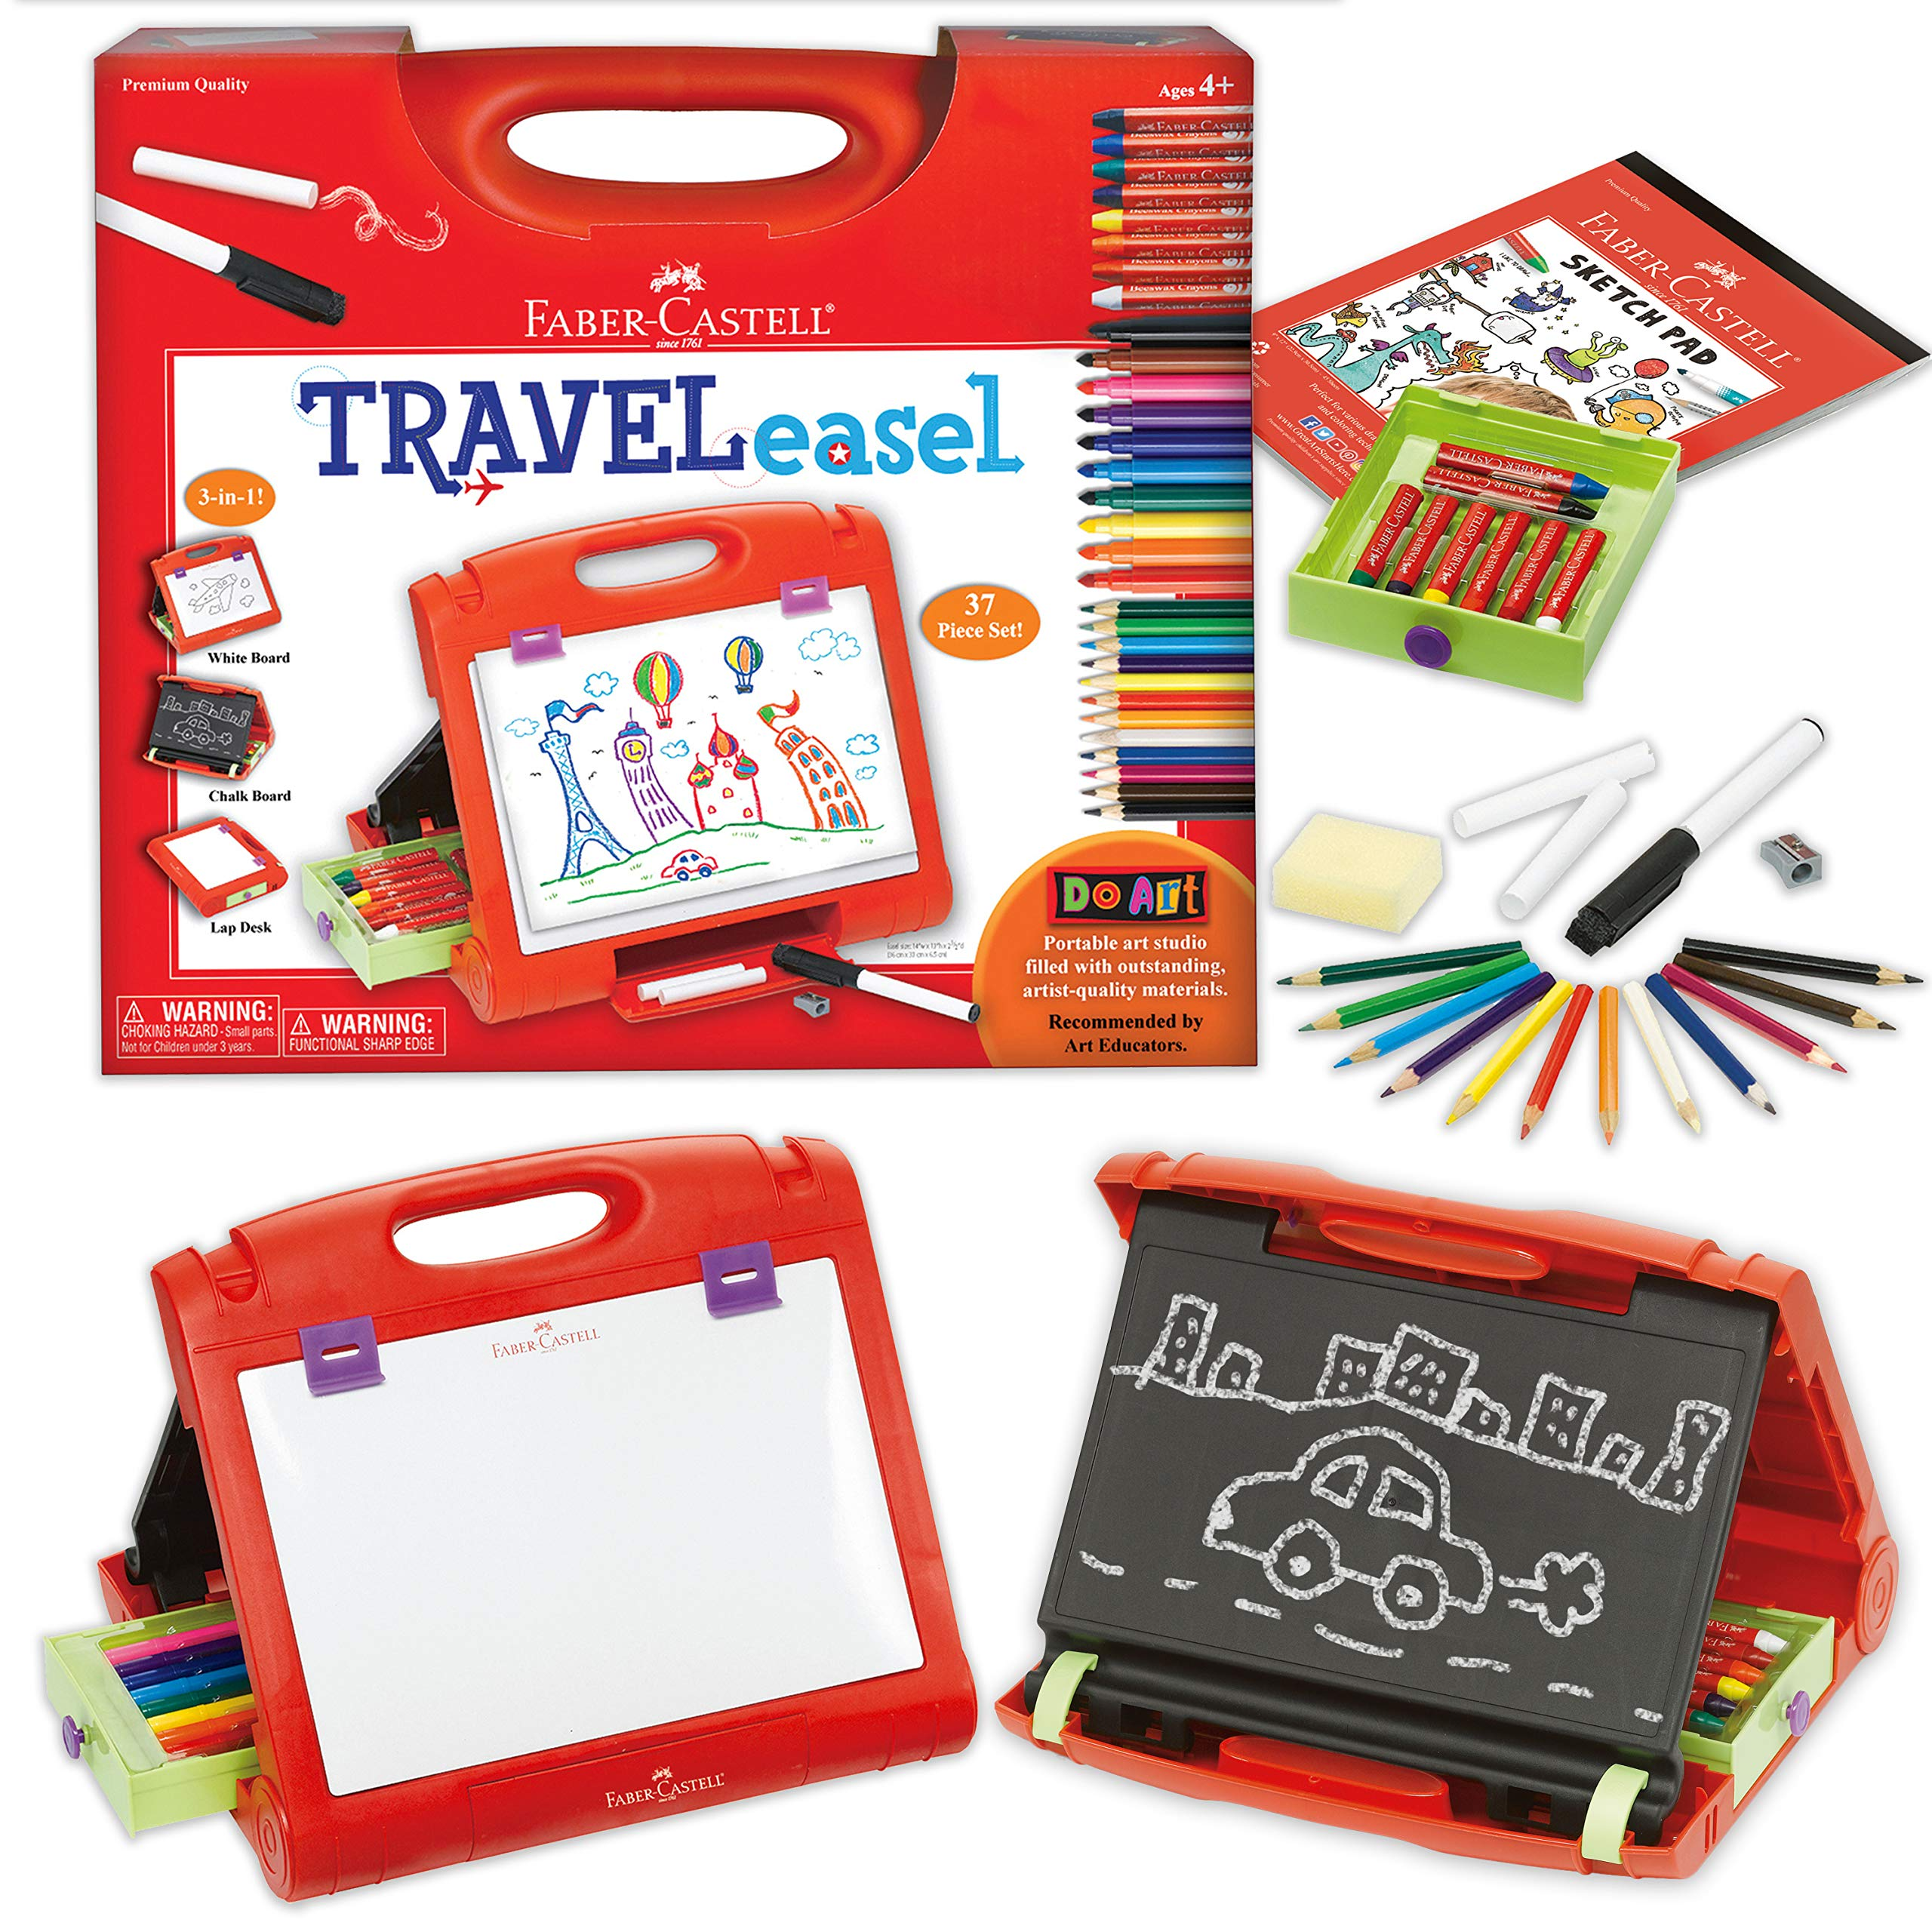 Faber-Castell Do-Art 3-in-1 Travel Easel - 30 Piece Tabletop Easel for Kids with Art Supplies, Multicolor